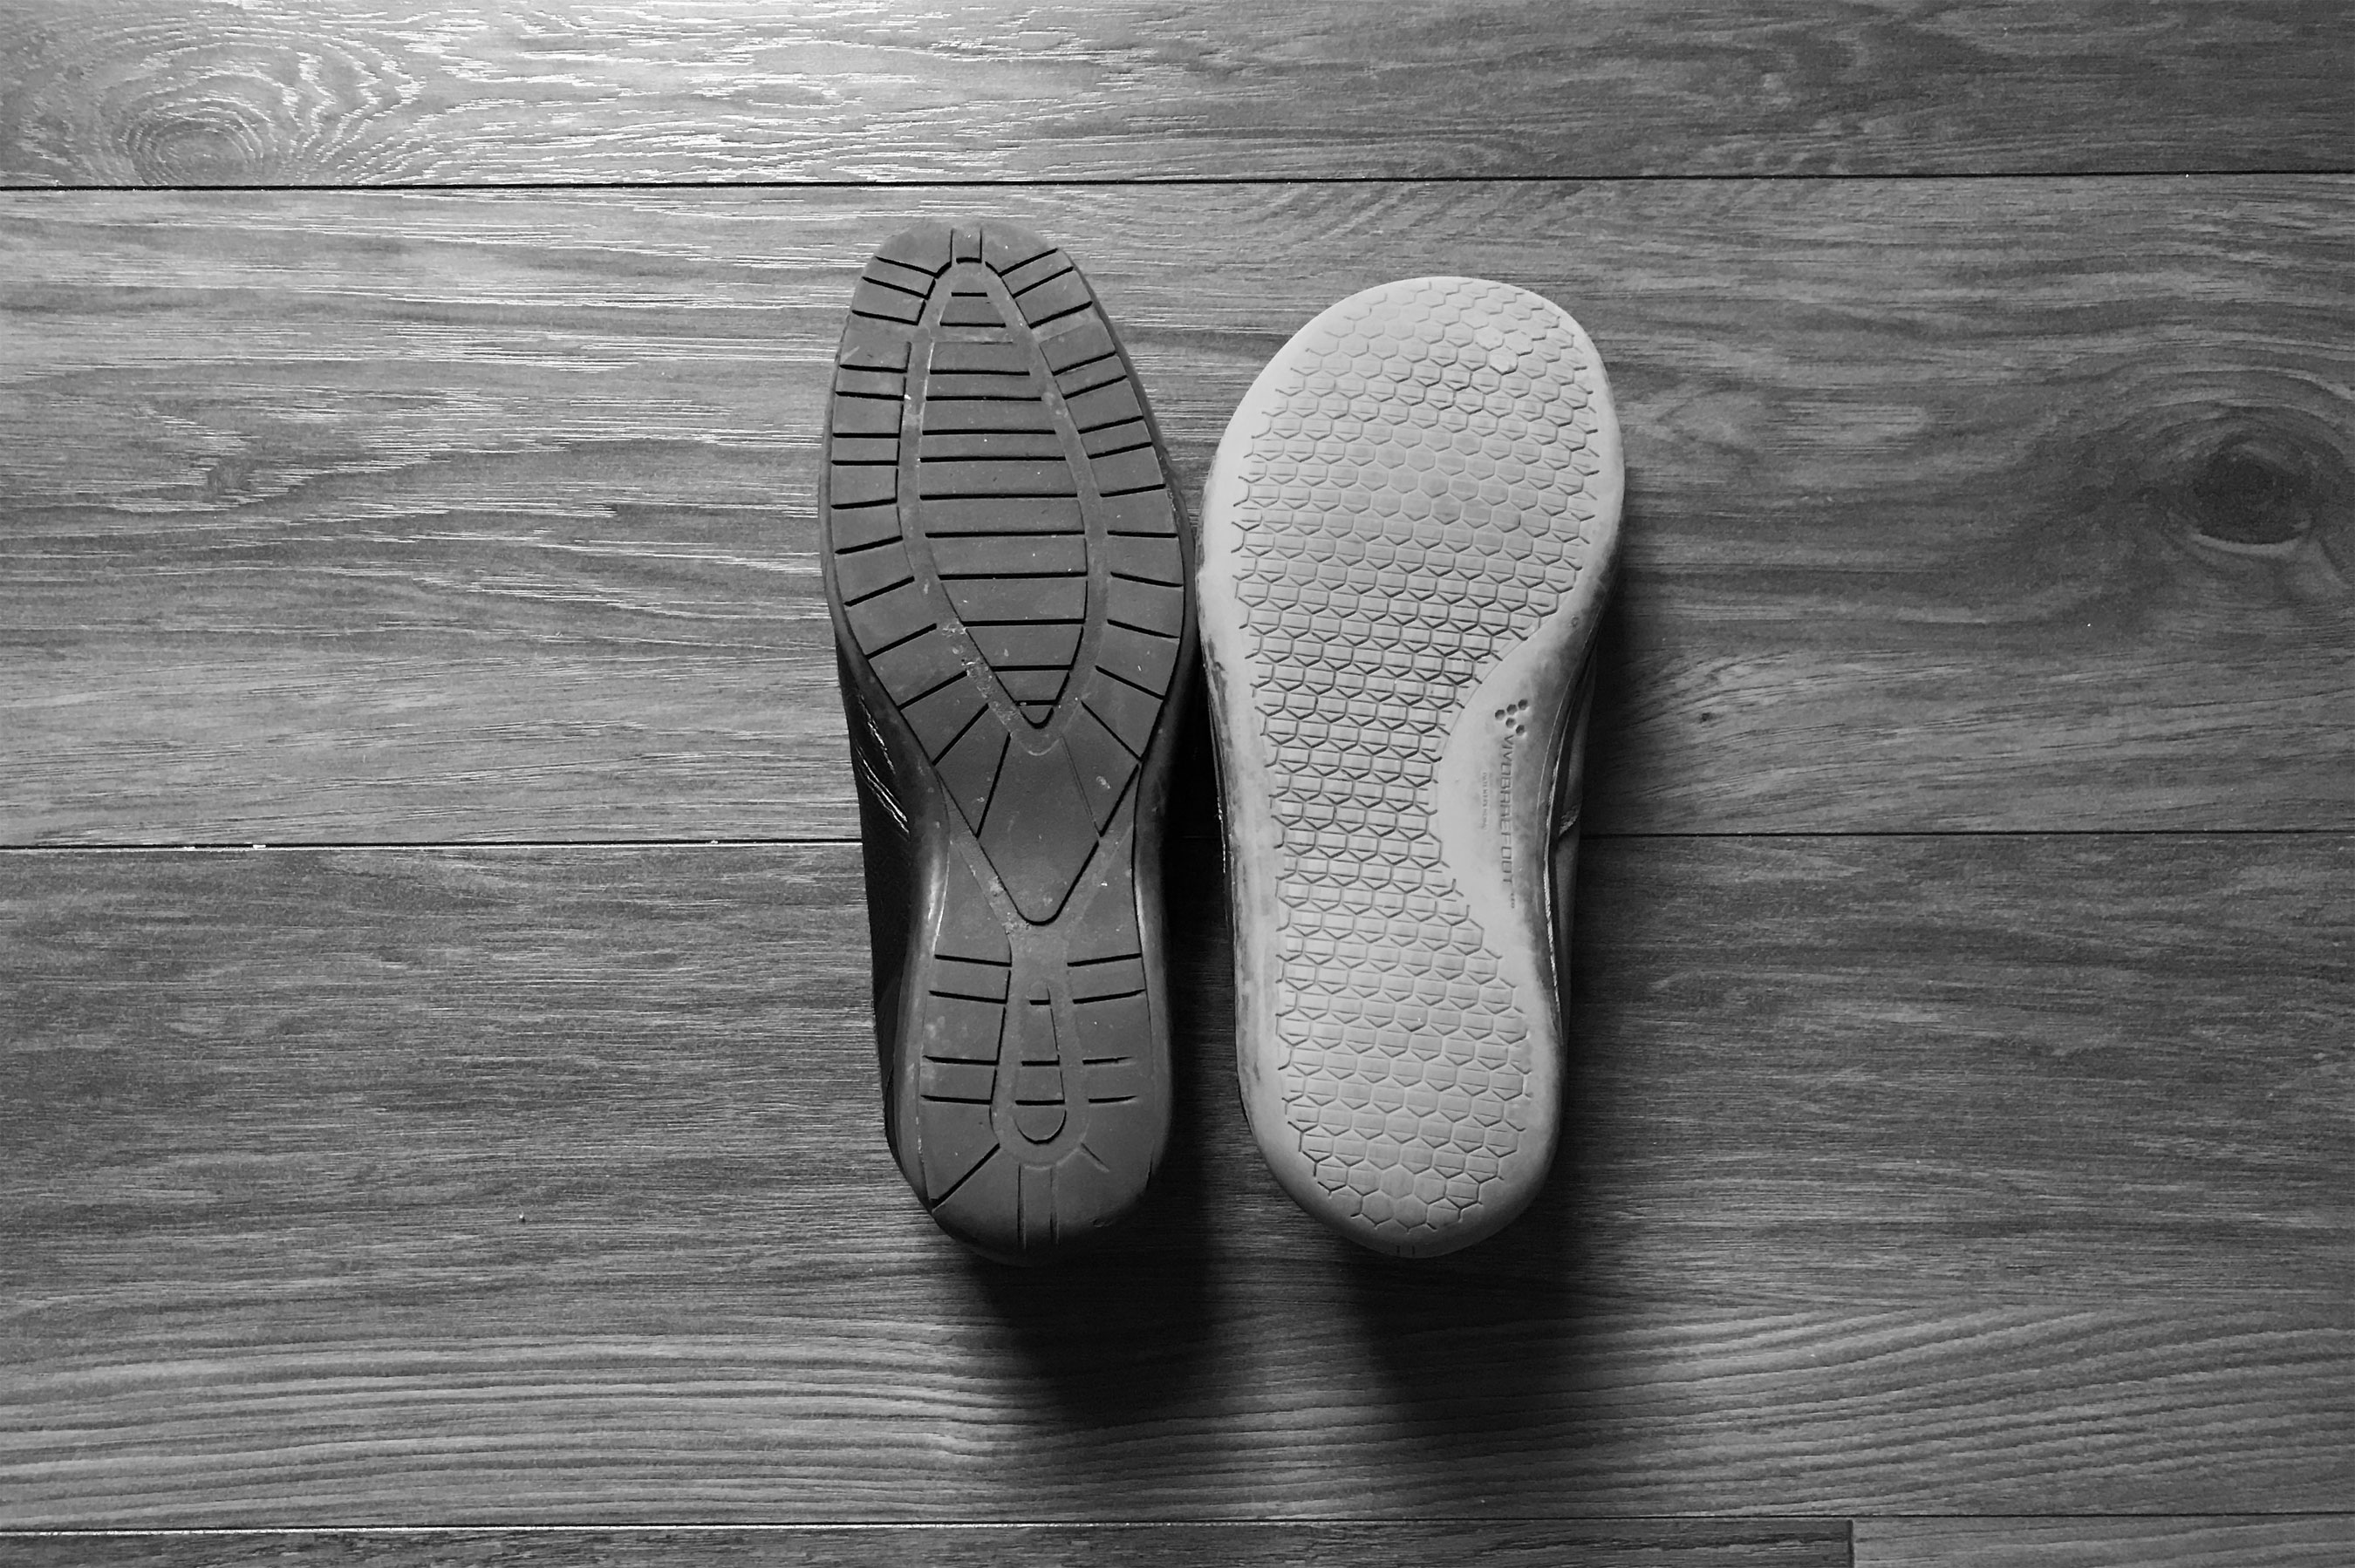 Minimal / barefoot shoes next to normal shoes.